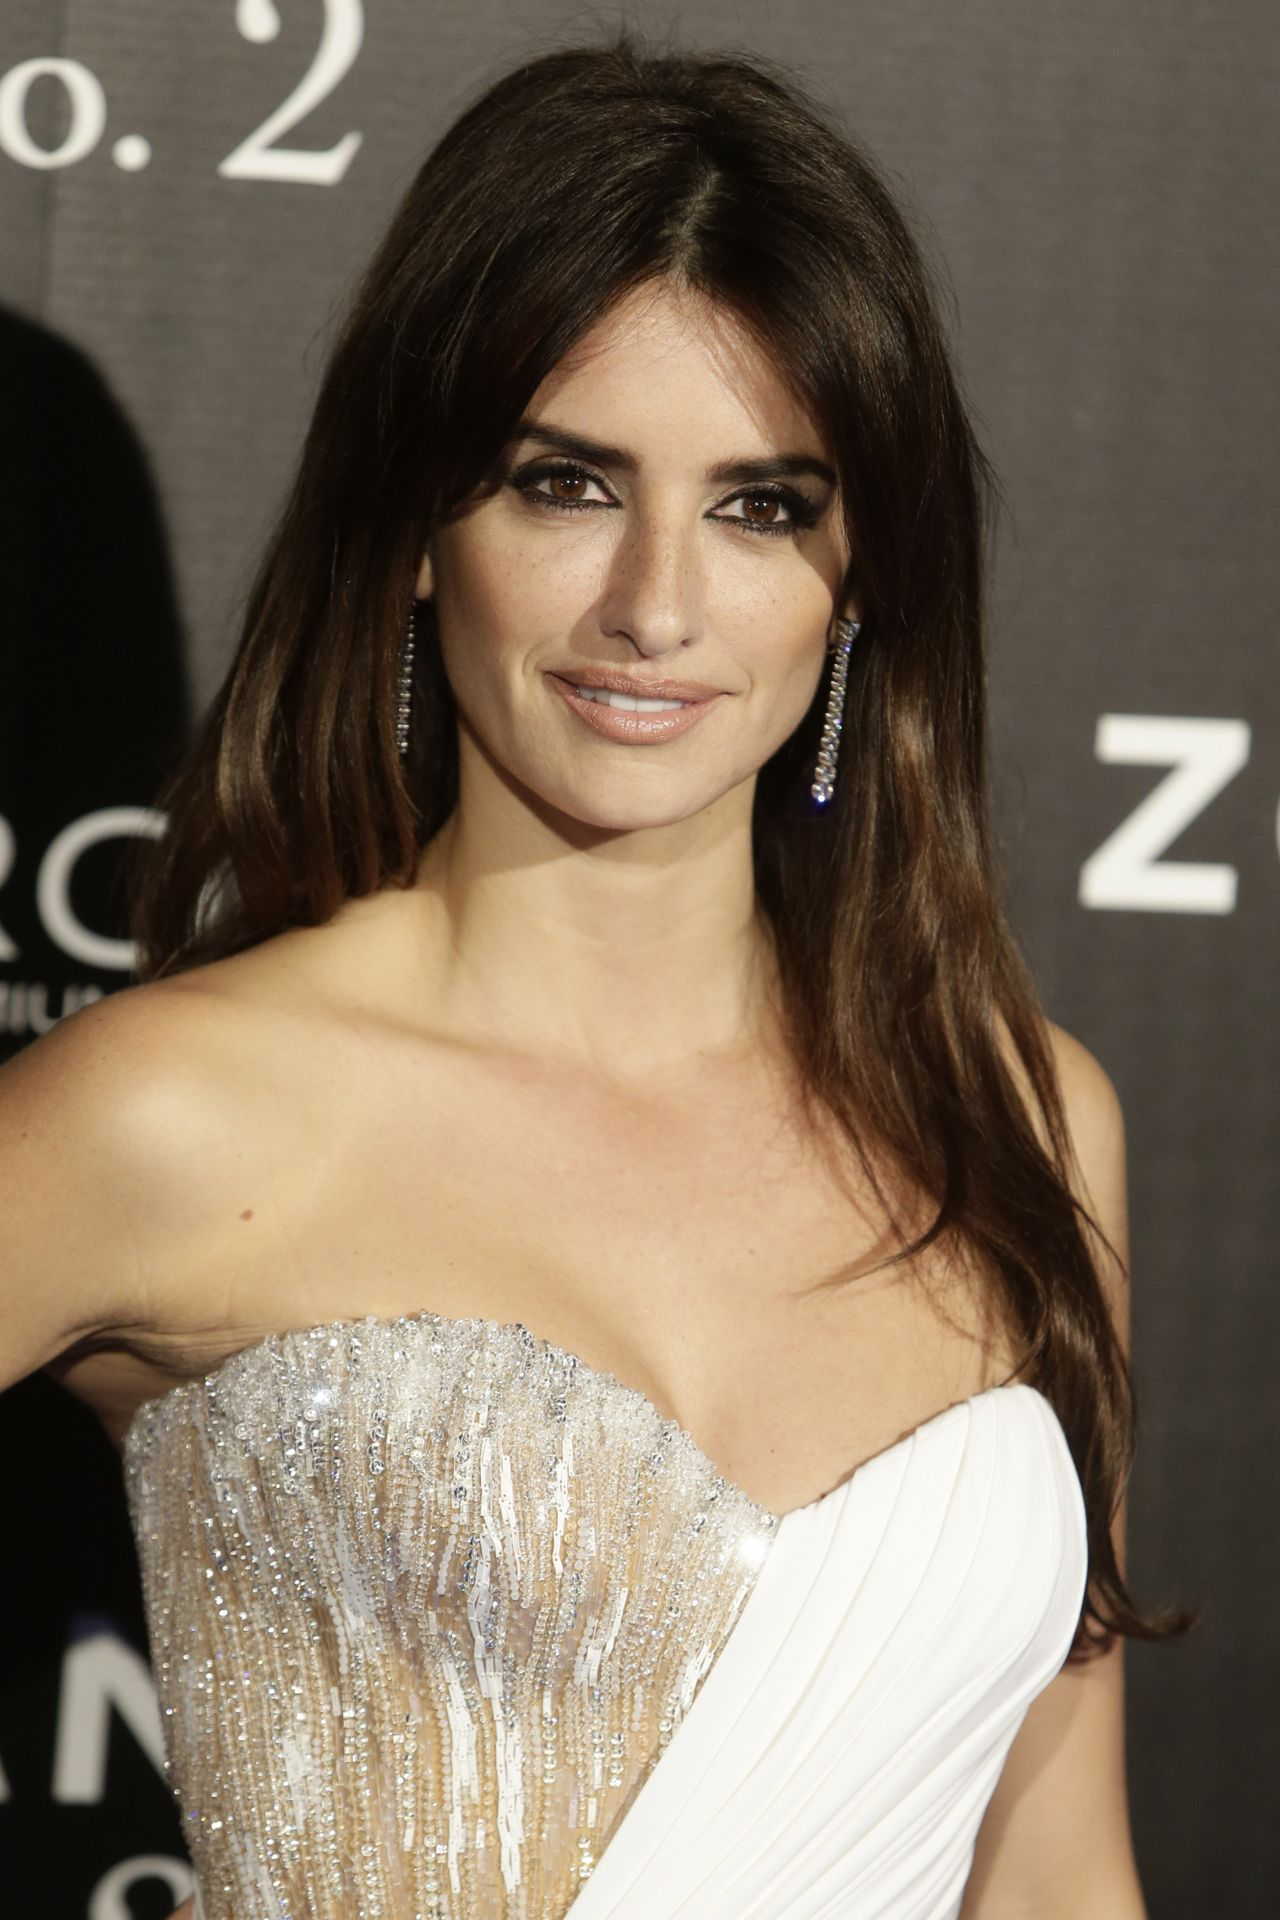 Penelope Cruz - 'Zoolander 2' Screening in Madrid Penelope Cruz